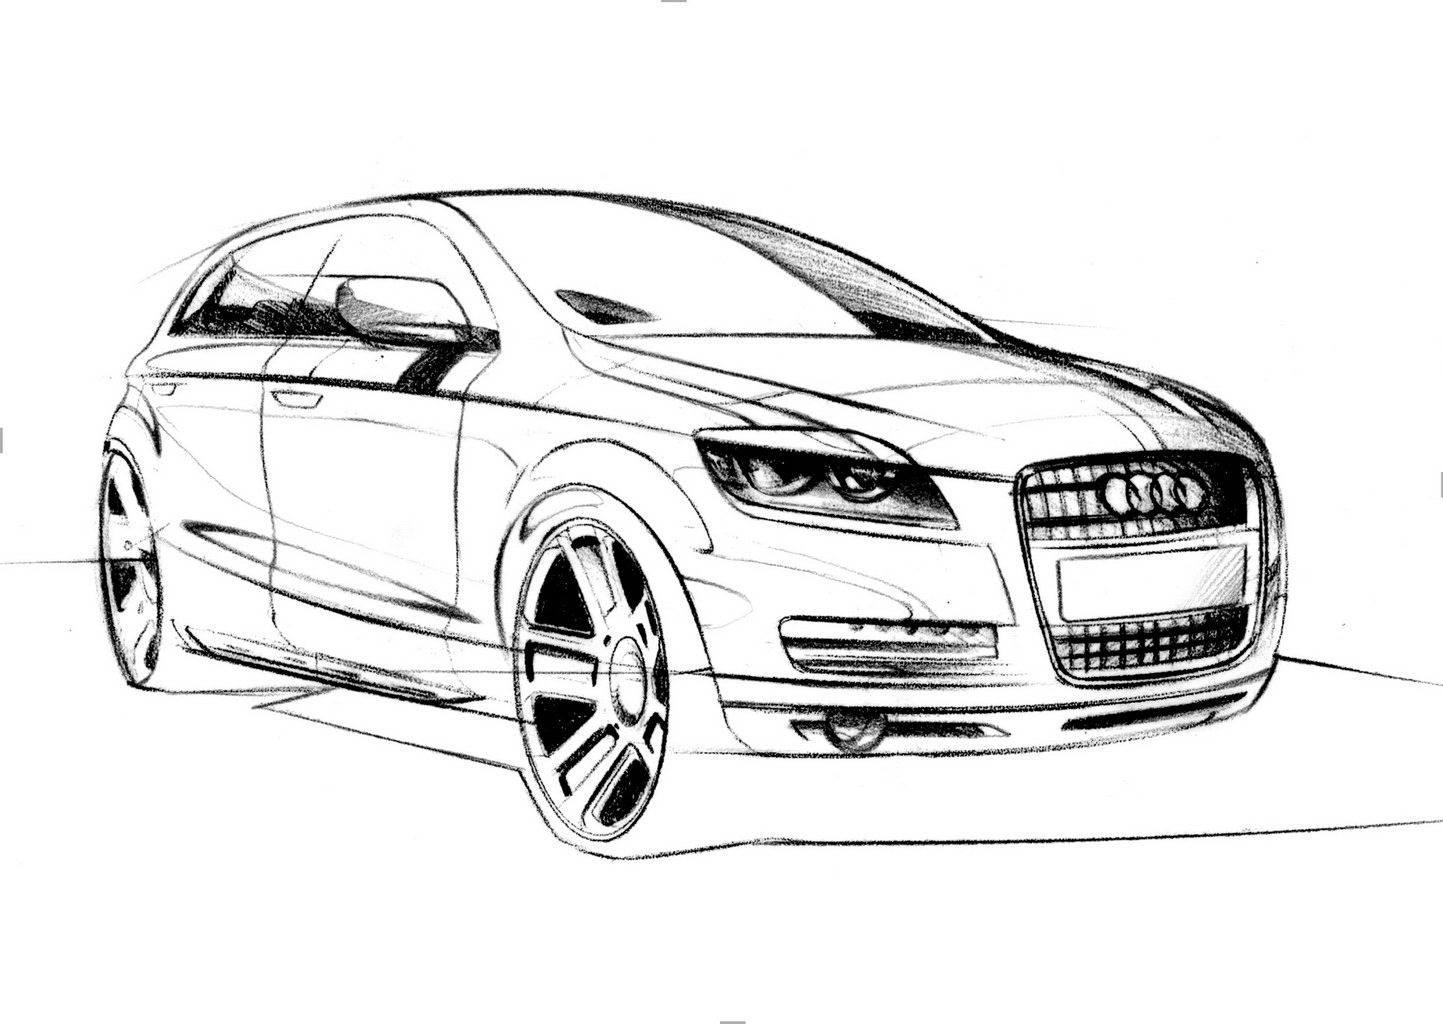 25926 besides A4 Saloon furthermore Audi Q7 as well Abmessungen moreover Audi Auto. on audi q7 quattro